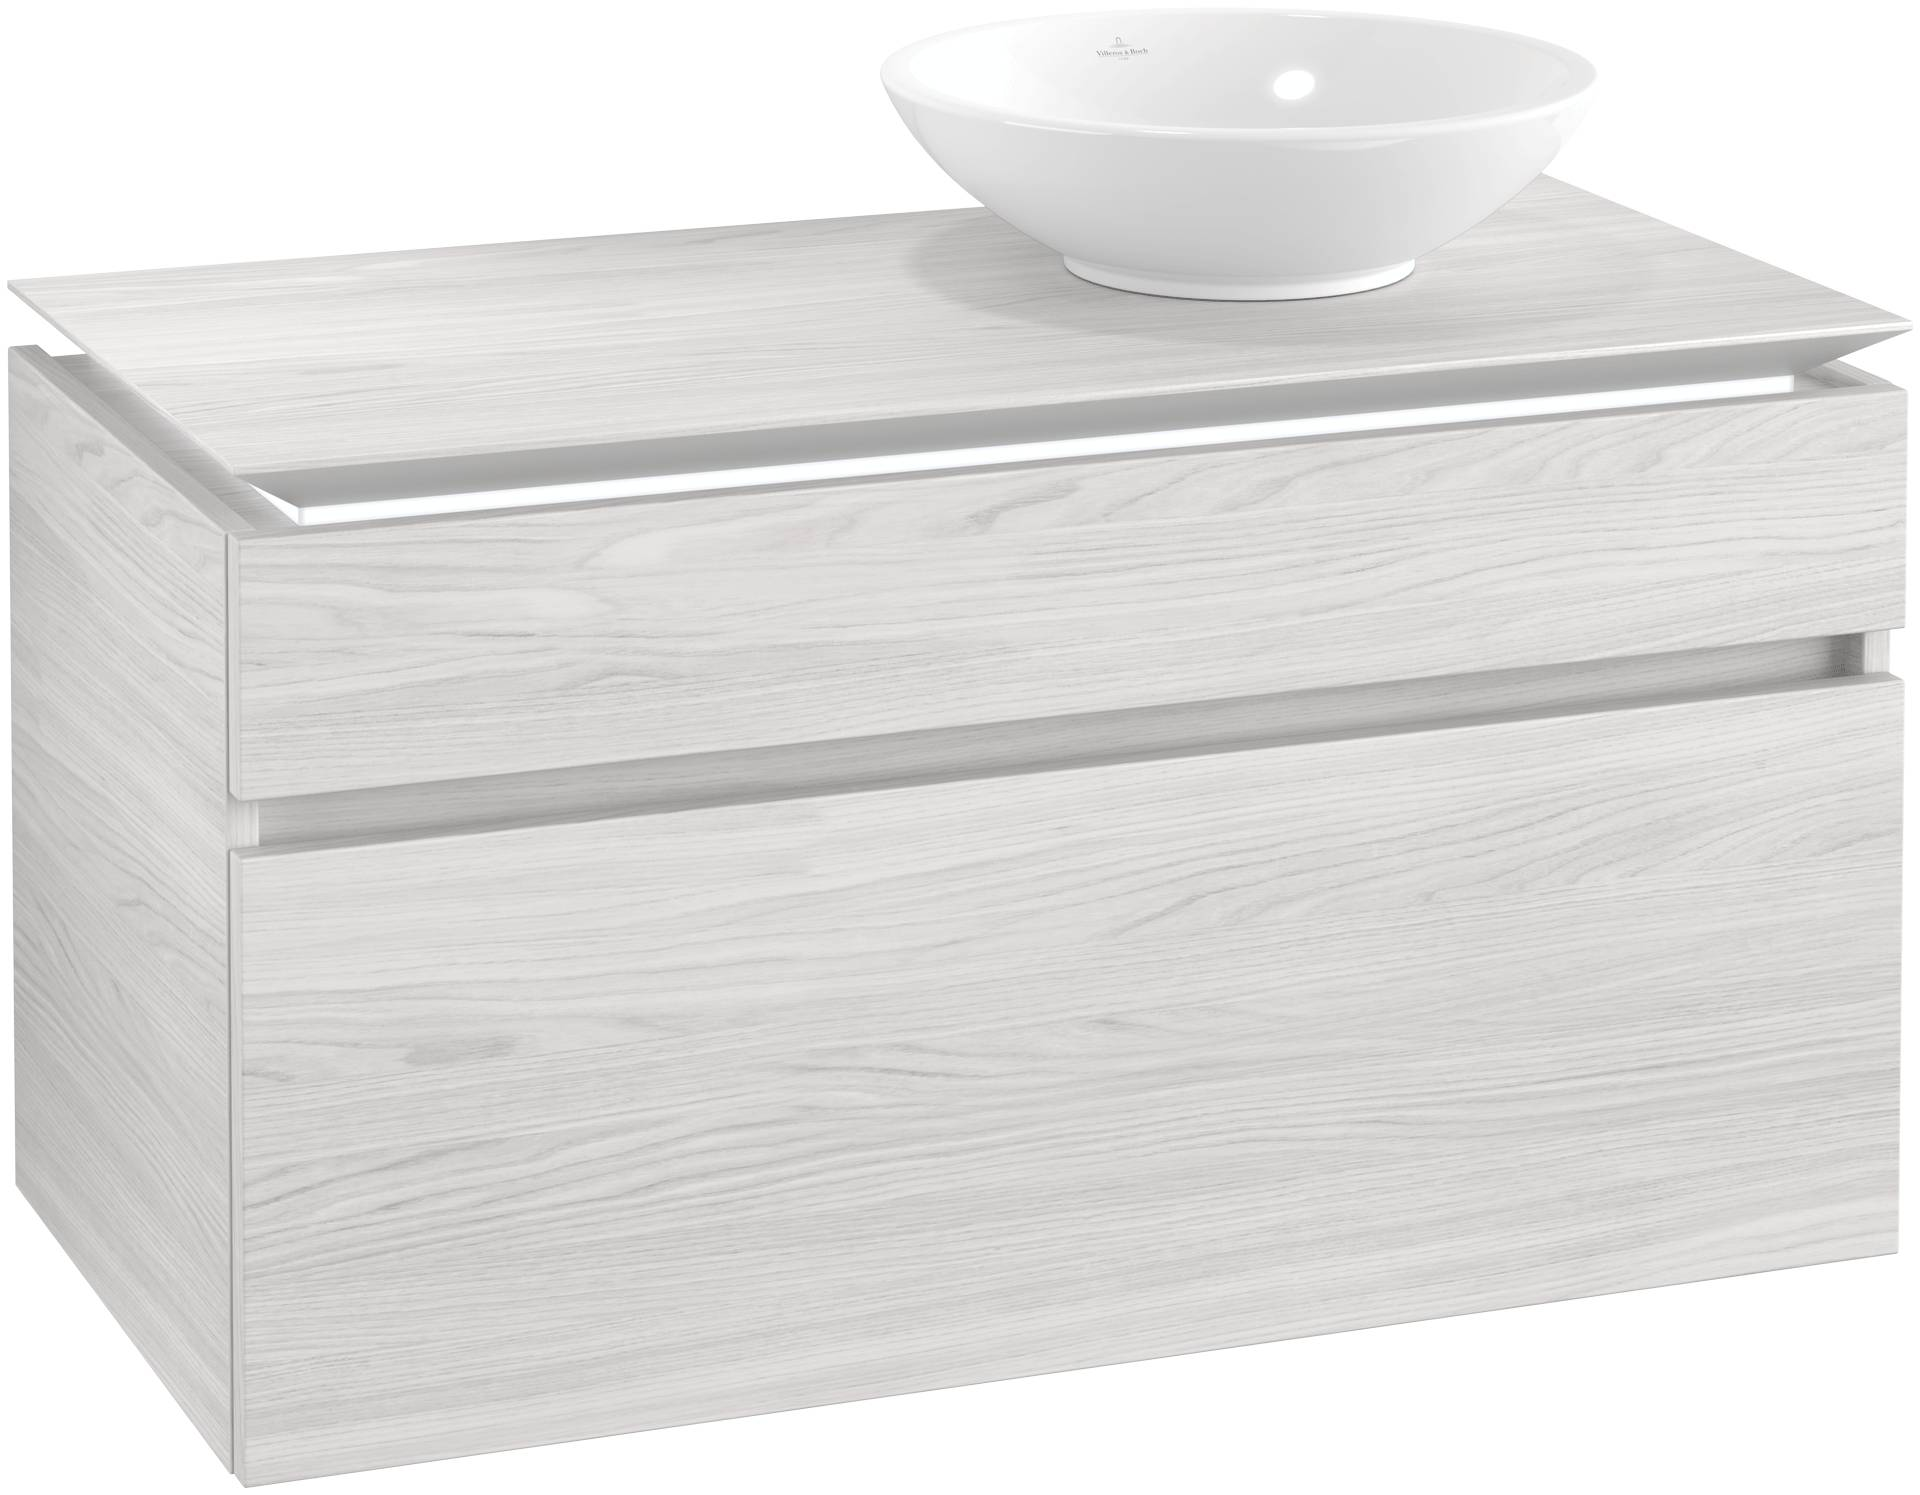 Villeroy & Boch Villeroy & Boch Legato - Meuble sous lavabo with 2 drawers & 1 cut-out right 1000 x 550 x 500mm bois blanc